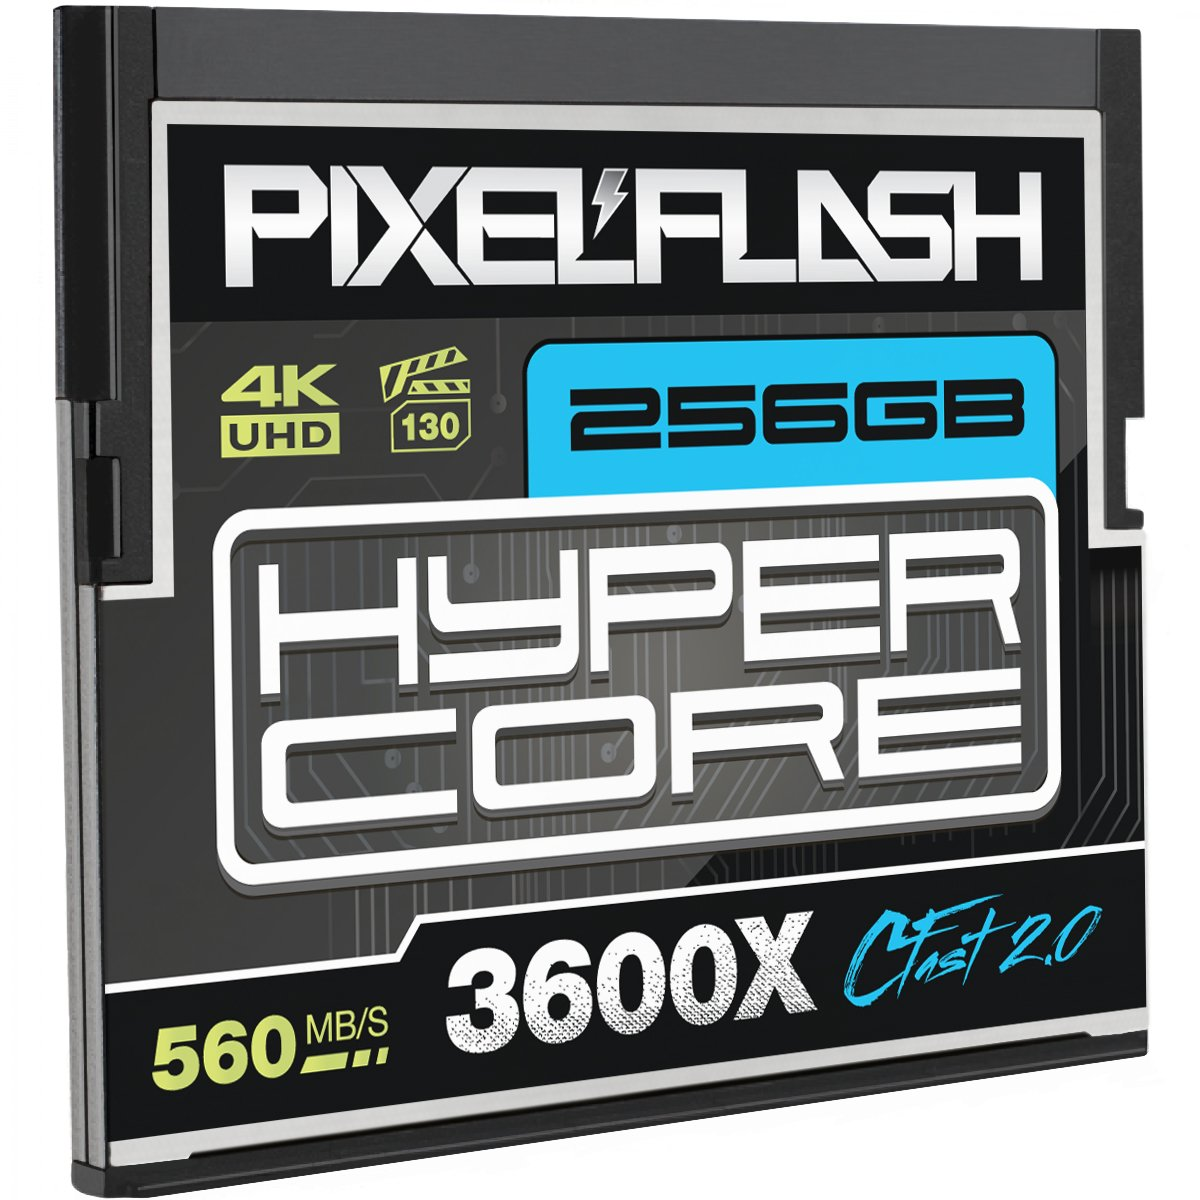 256GB PixelFlash HyperCore CFast 2.0 Memory Card 3600X up to 560MB/s SATA3 C Fast for Phase One Leica Alexa Mini Canon Nikon Hasselblad Blackmagic Ursa and More